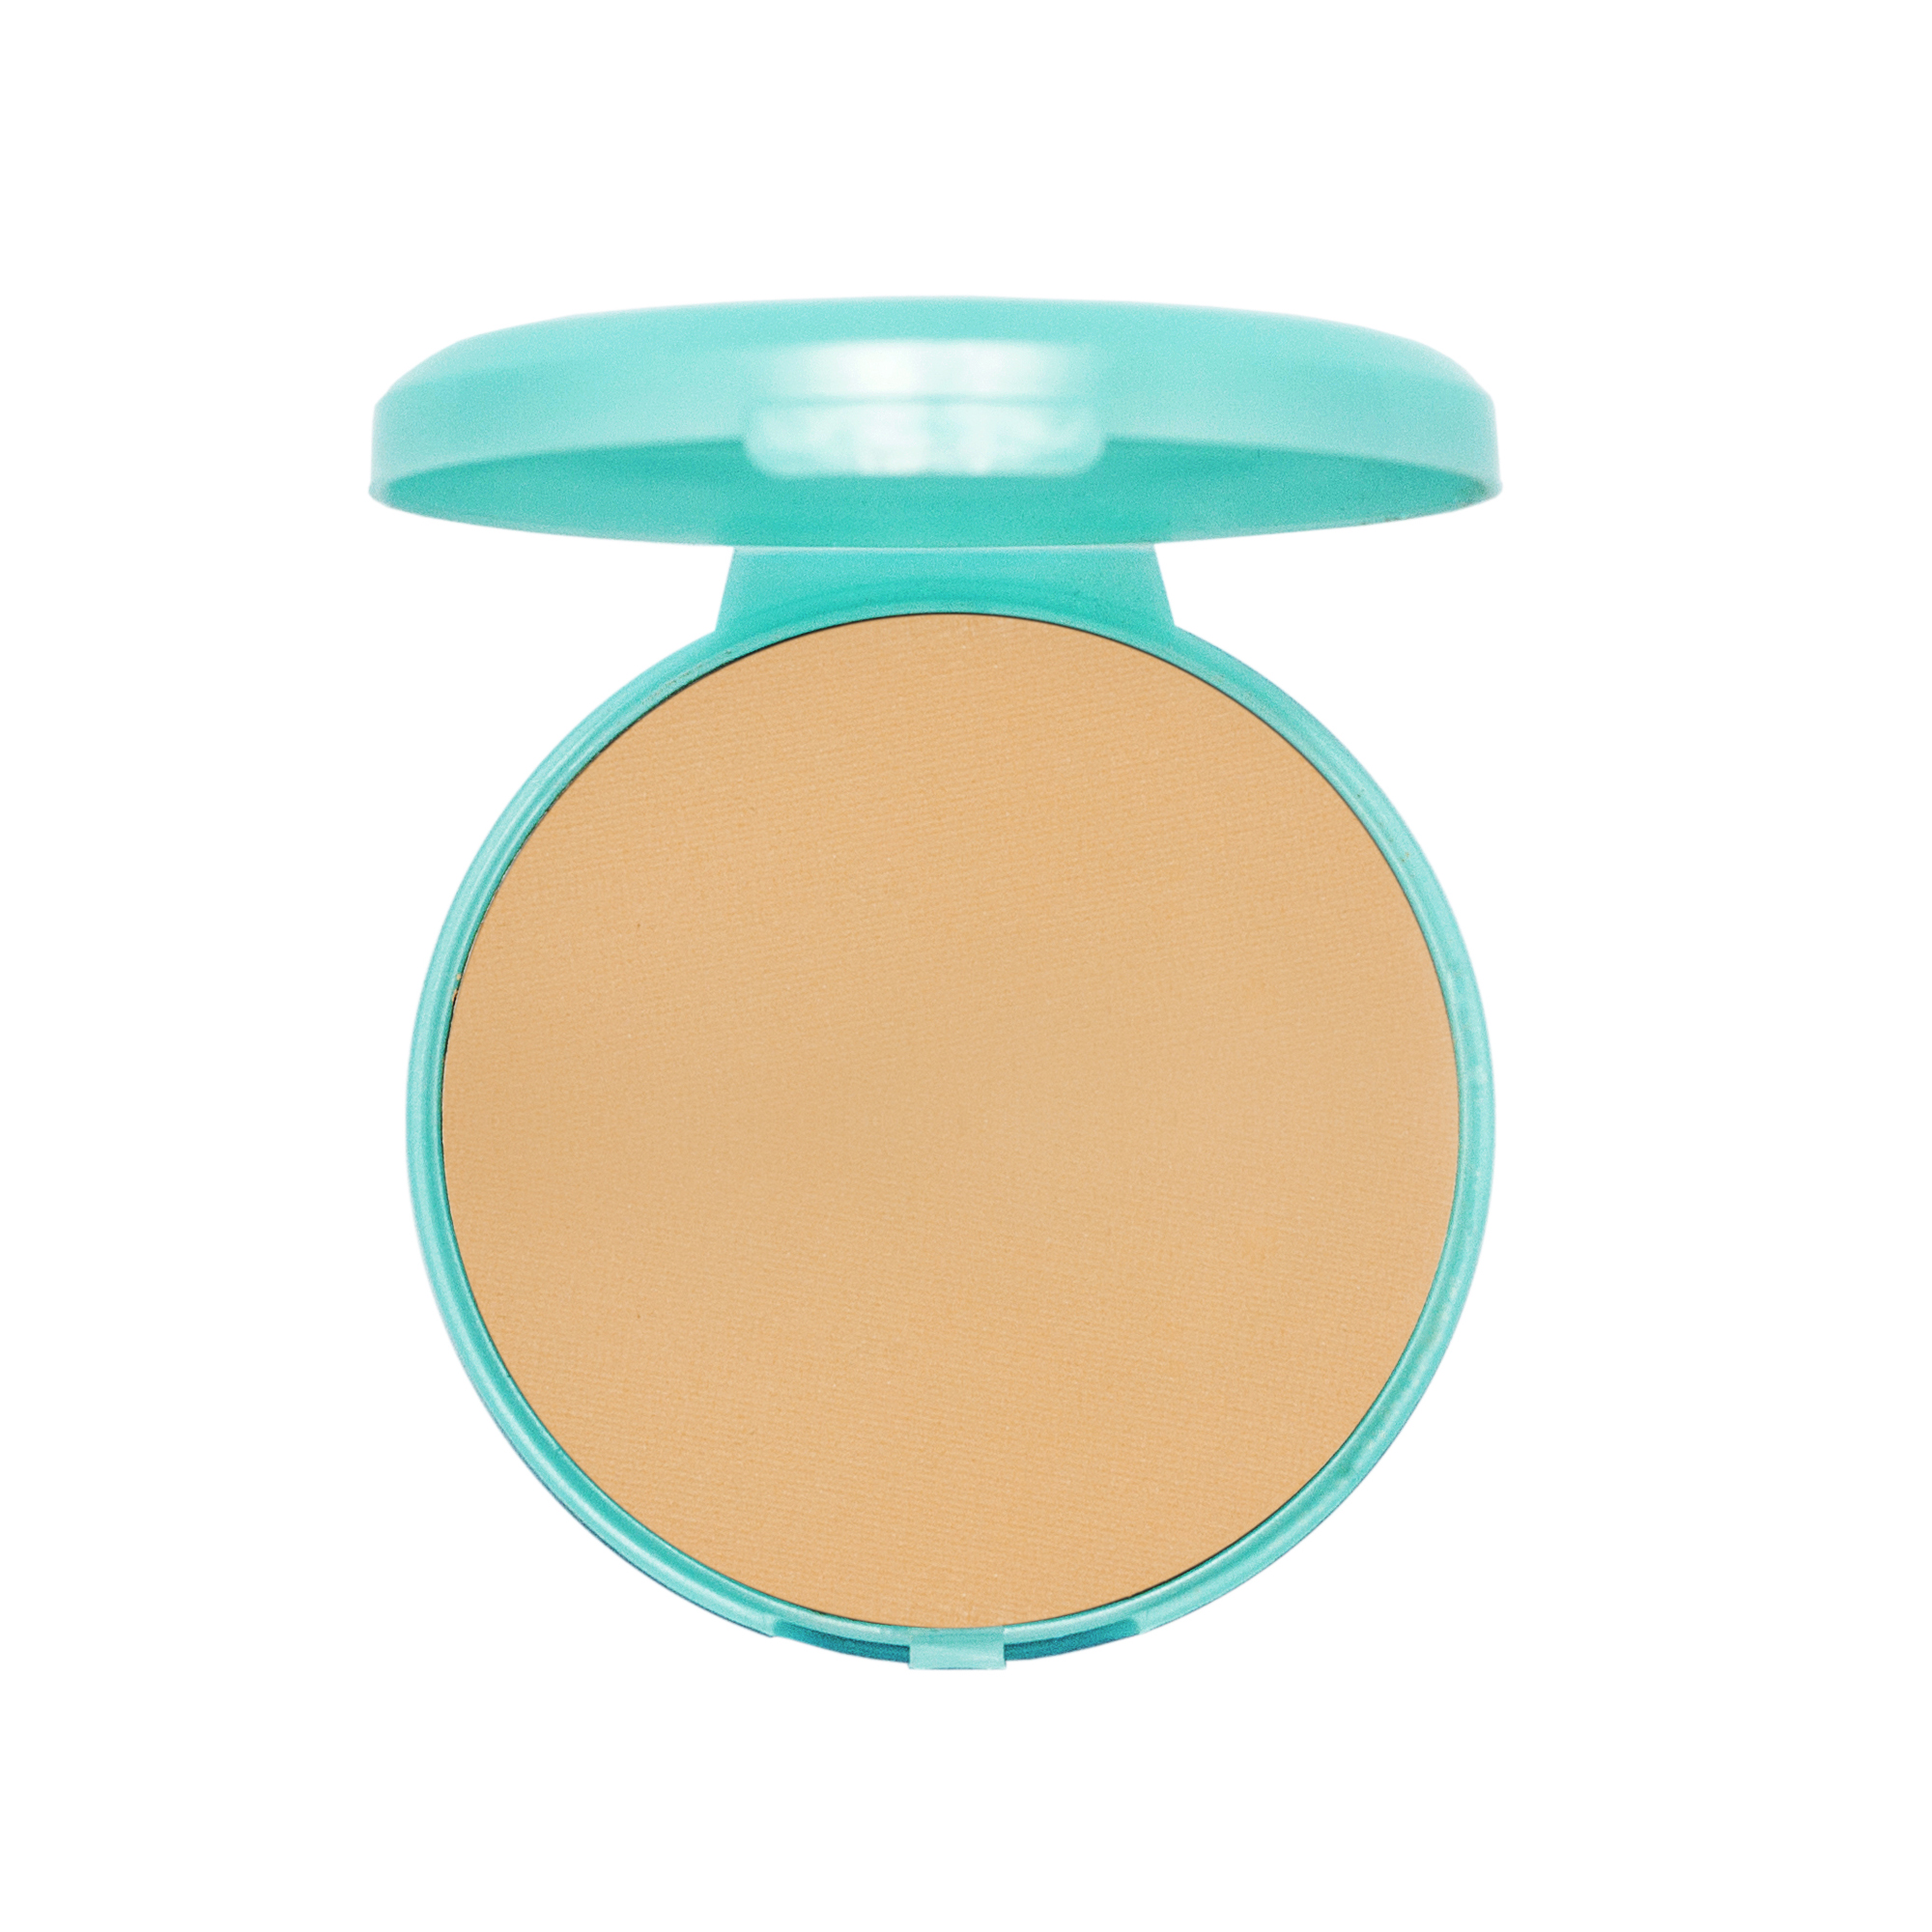 harga Wardah Refill Everyday Luminous Compact Powder 03 Ivory 14g Gogobli.com